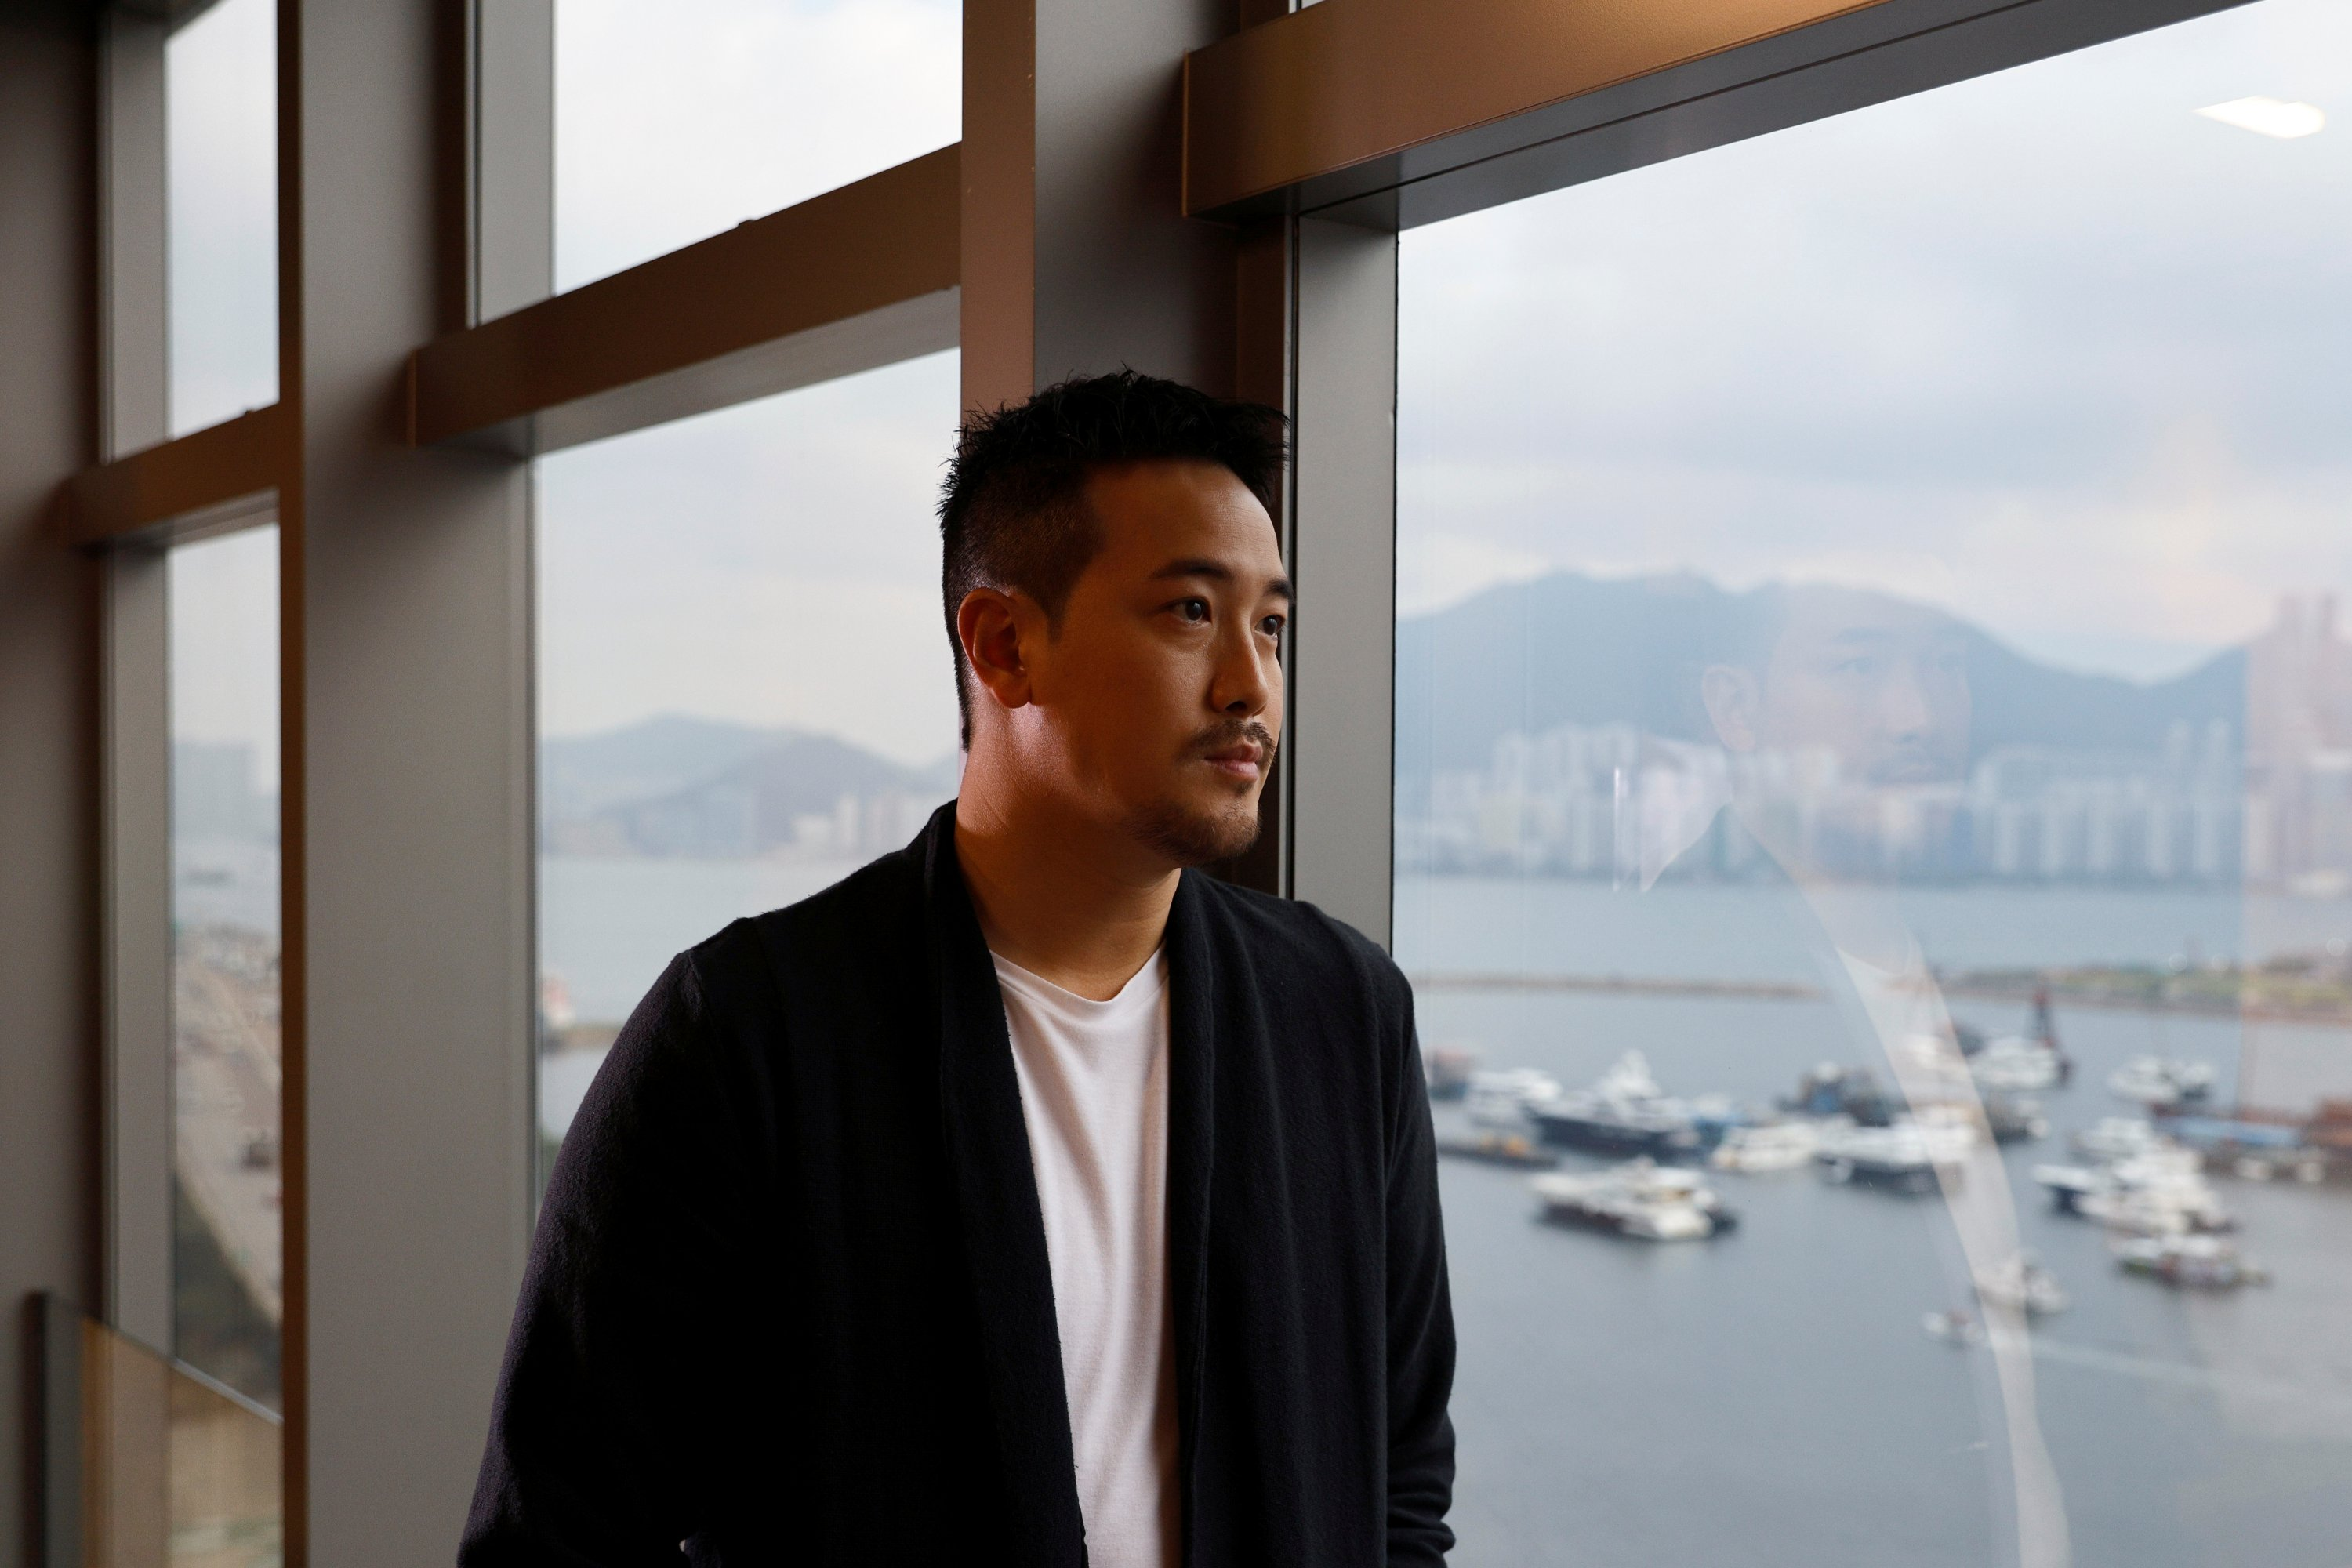 Derek Tsang, director of 'Better Days,' poses after an interview with Reuters, in Hong Kong, China, April 9, 2021. (REUTERS Photo)